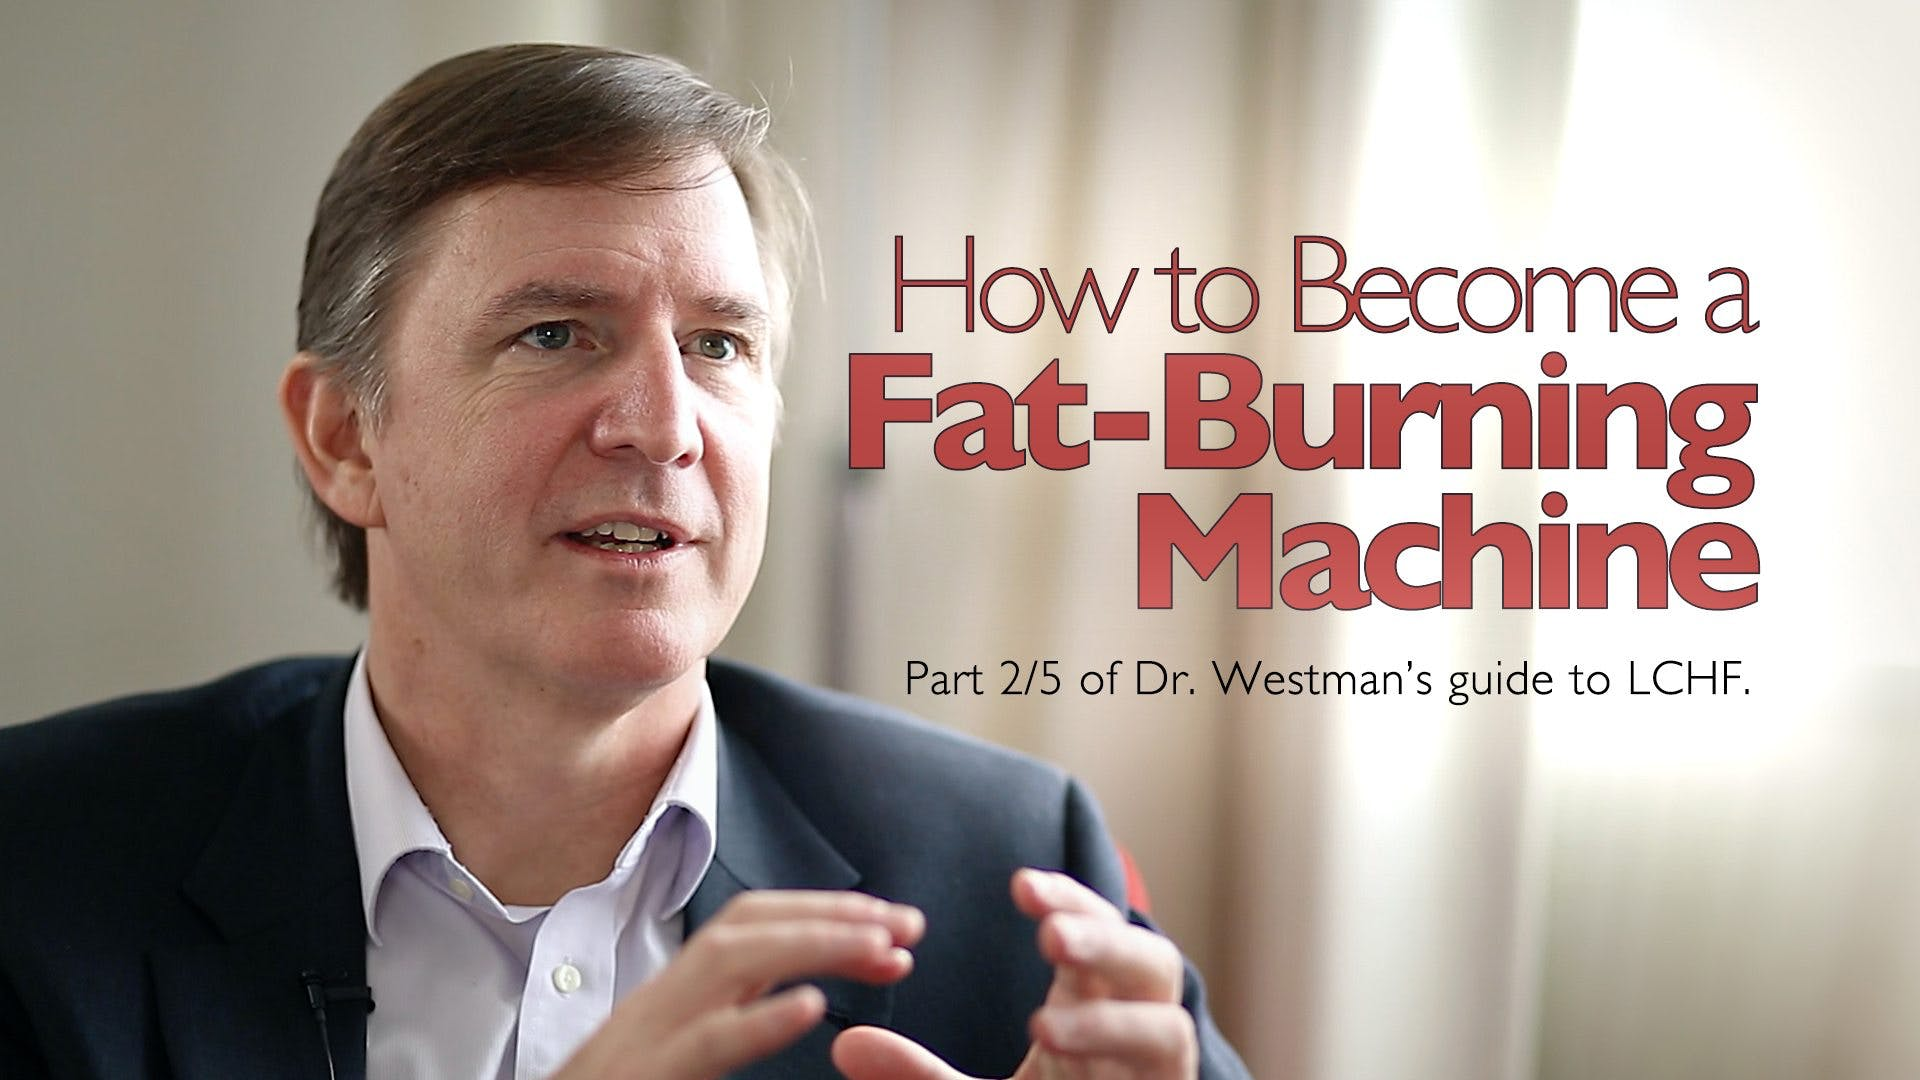 How to become a fat-burning machine